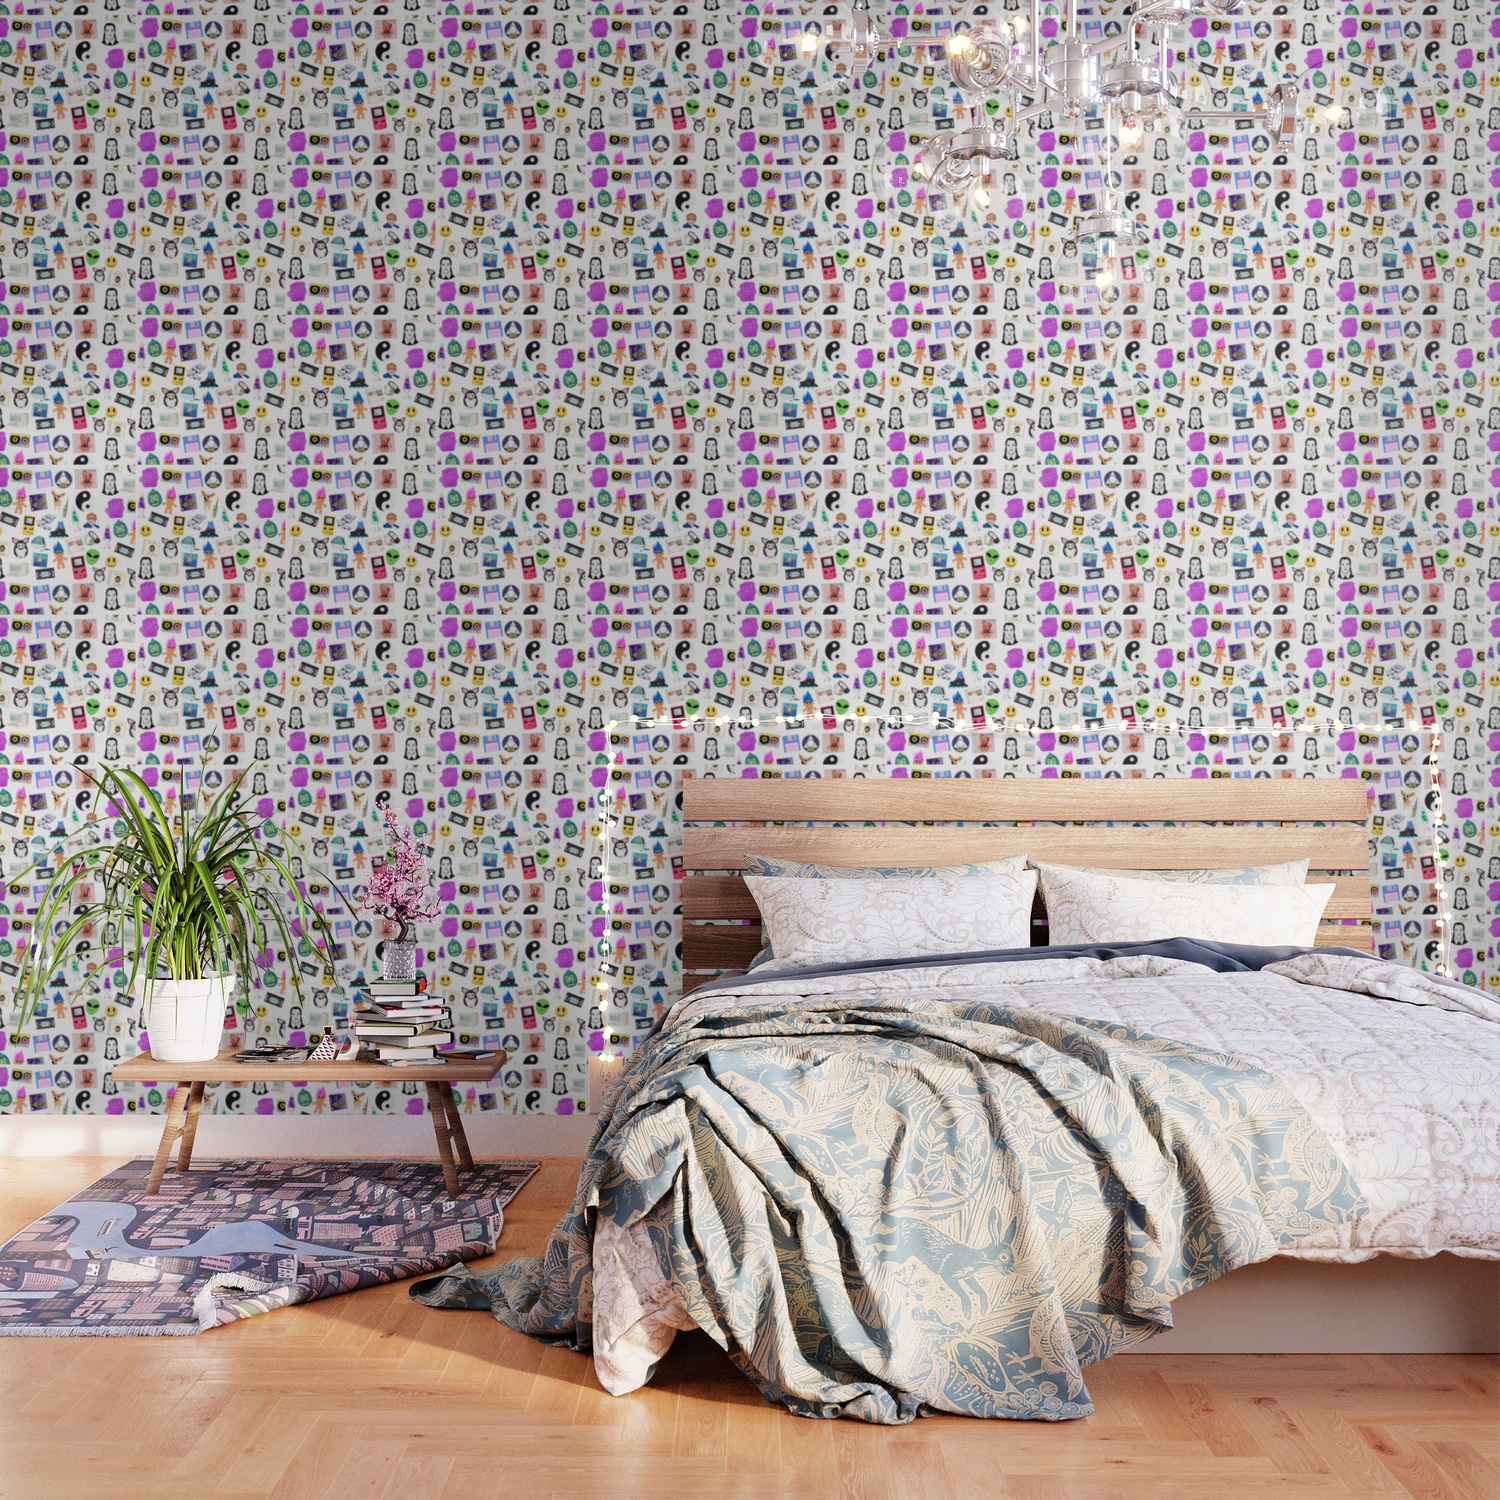 Bring Back the 90s Wallpaper by mineeyesdesign Society6 1500x1500